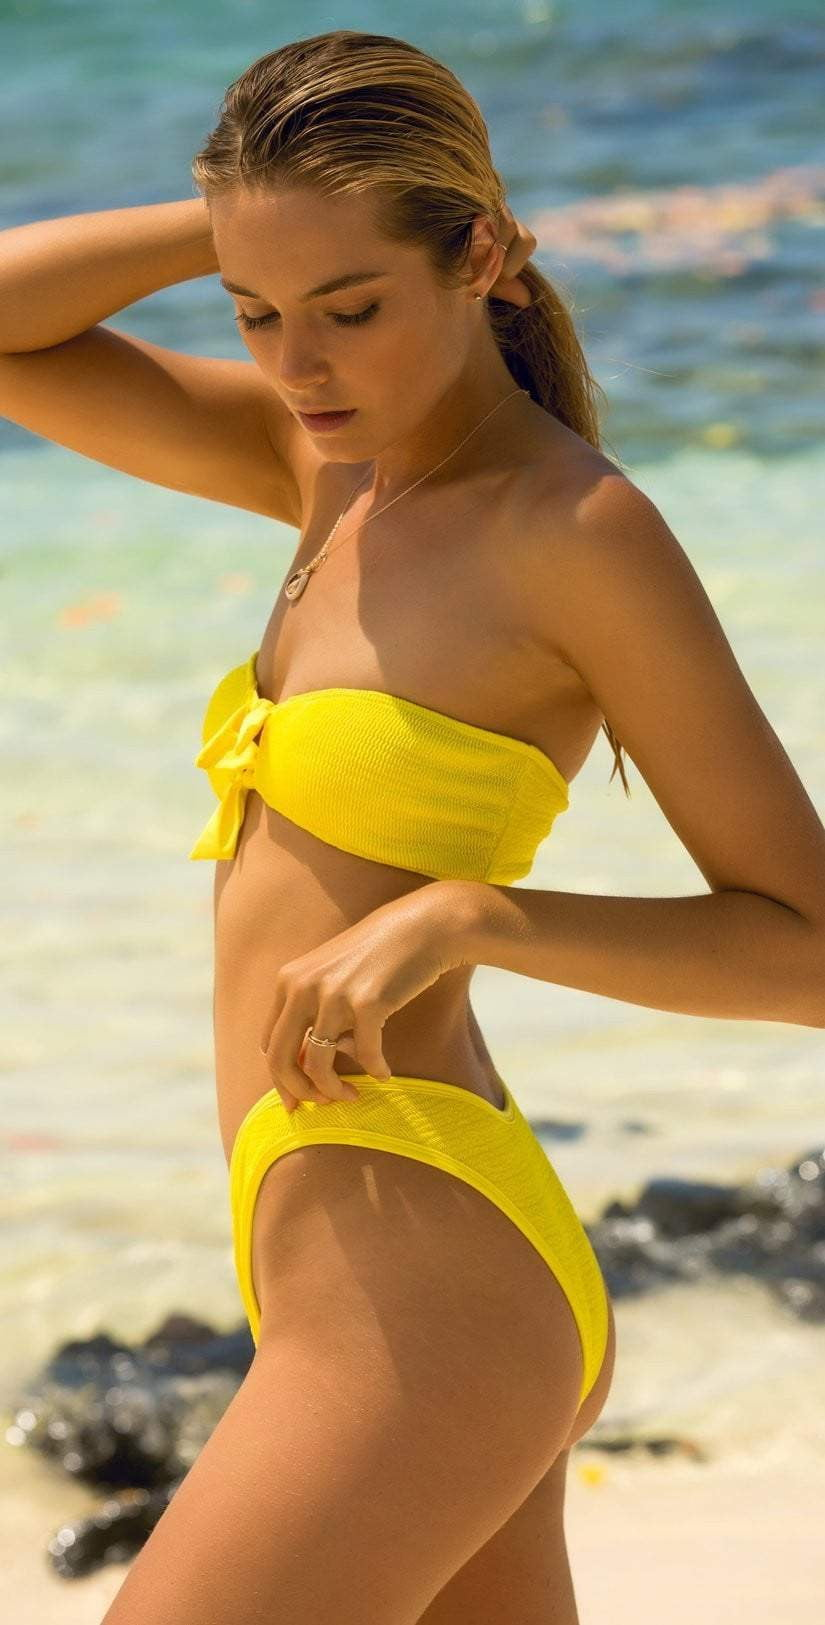 L Space Pucker Up Yellow Whiplash Bikini Bottom PKWPB18-CAY side view of top and bottom